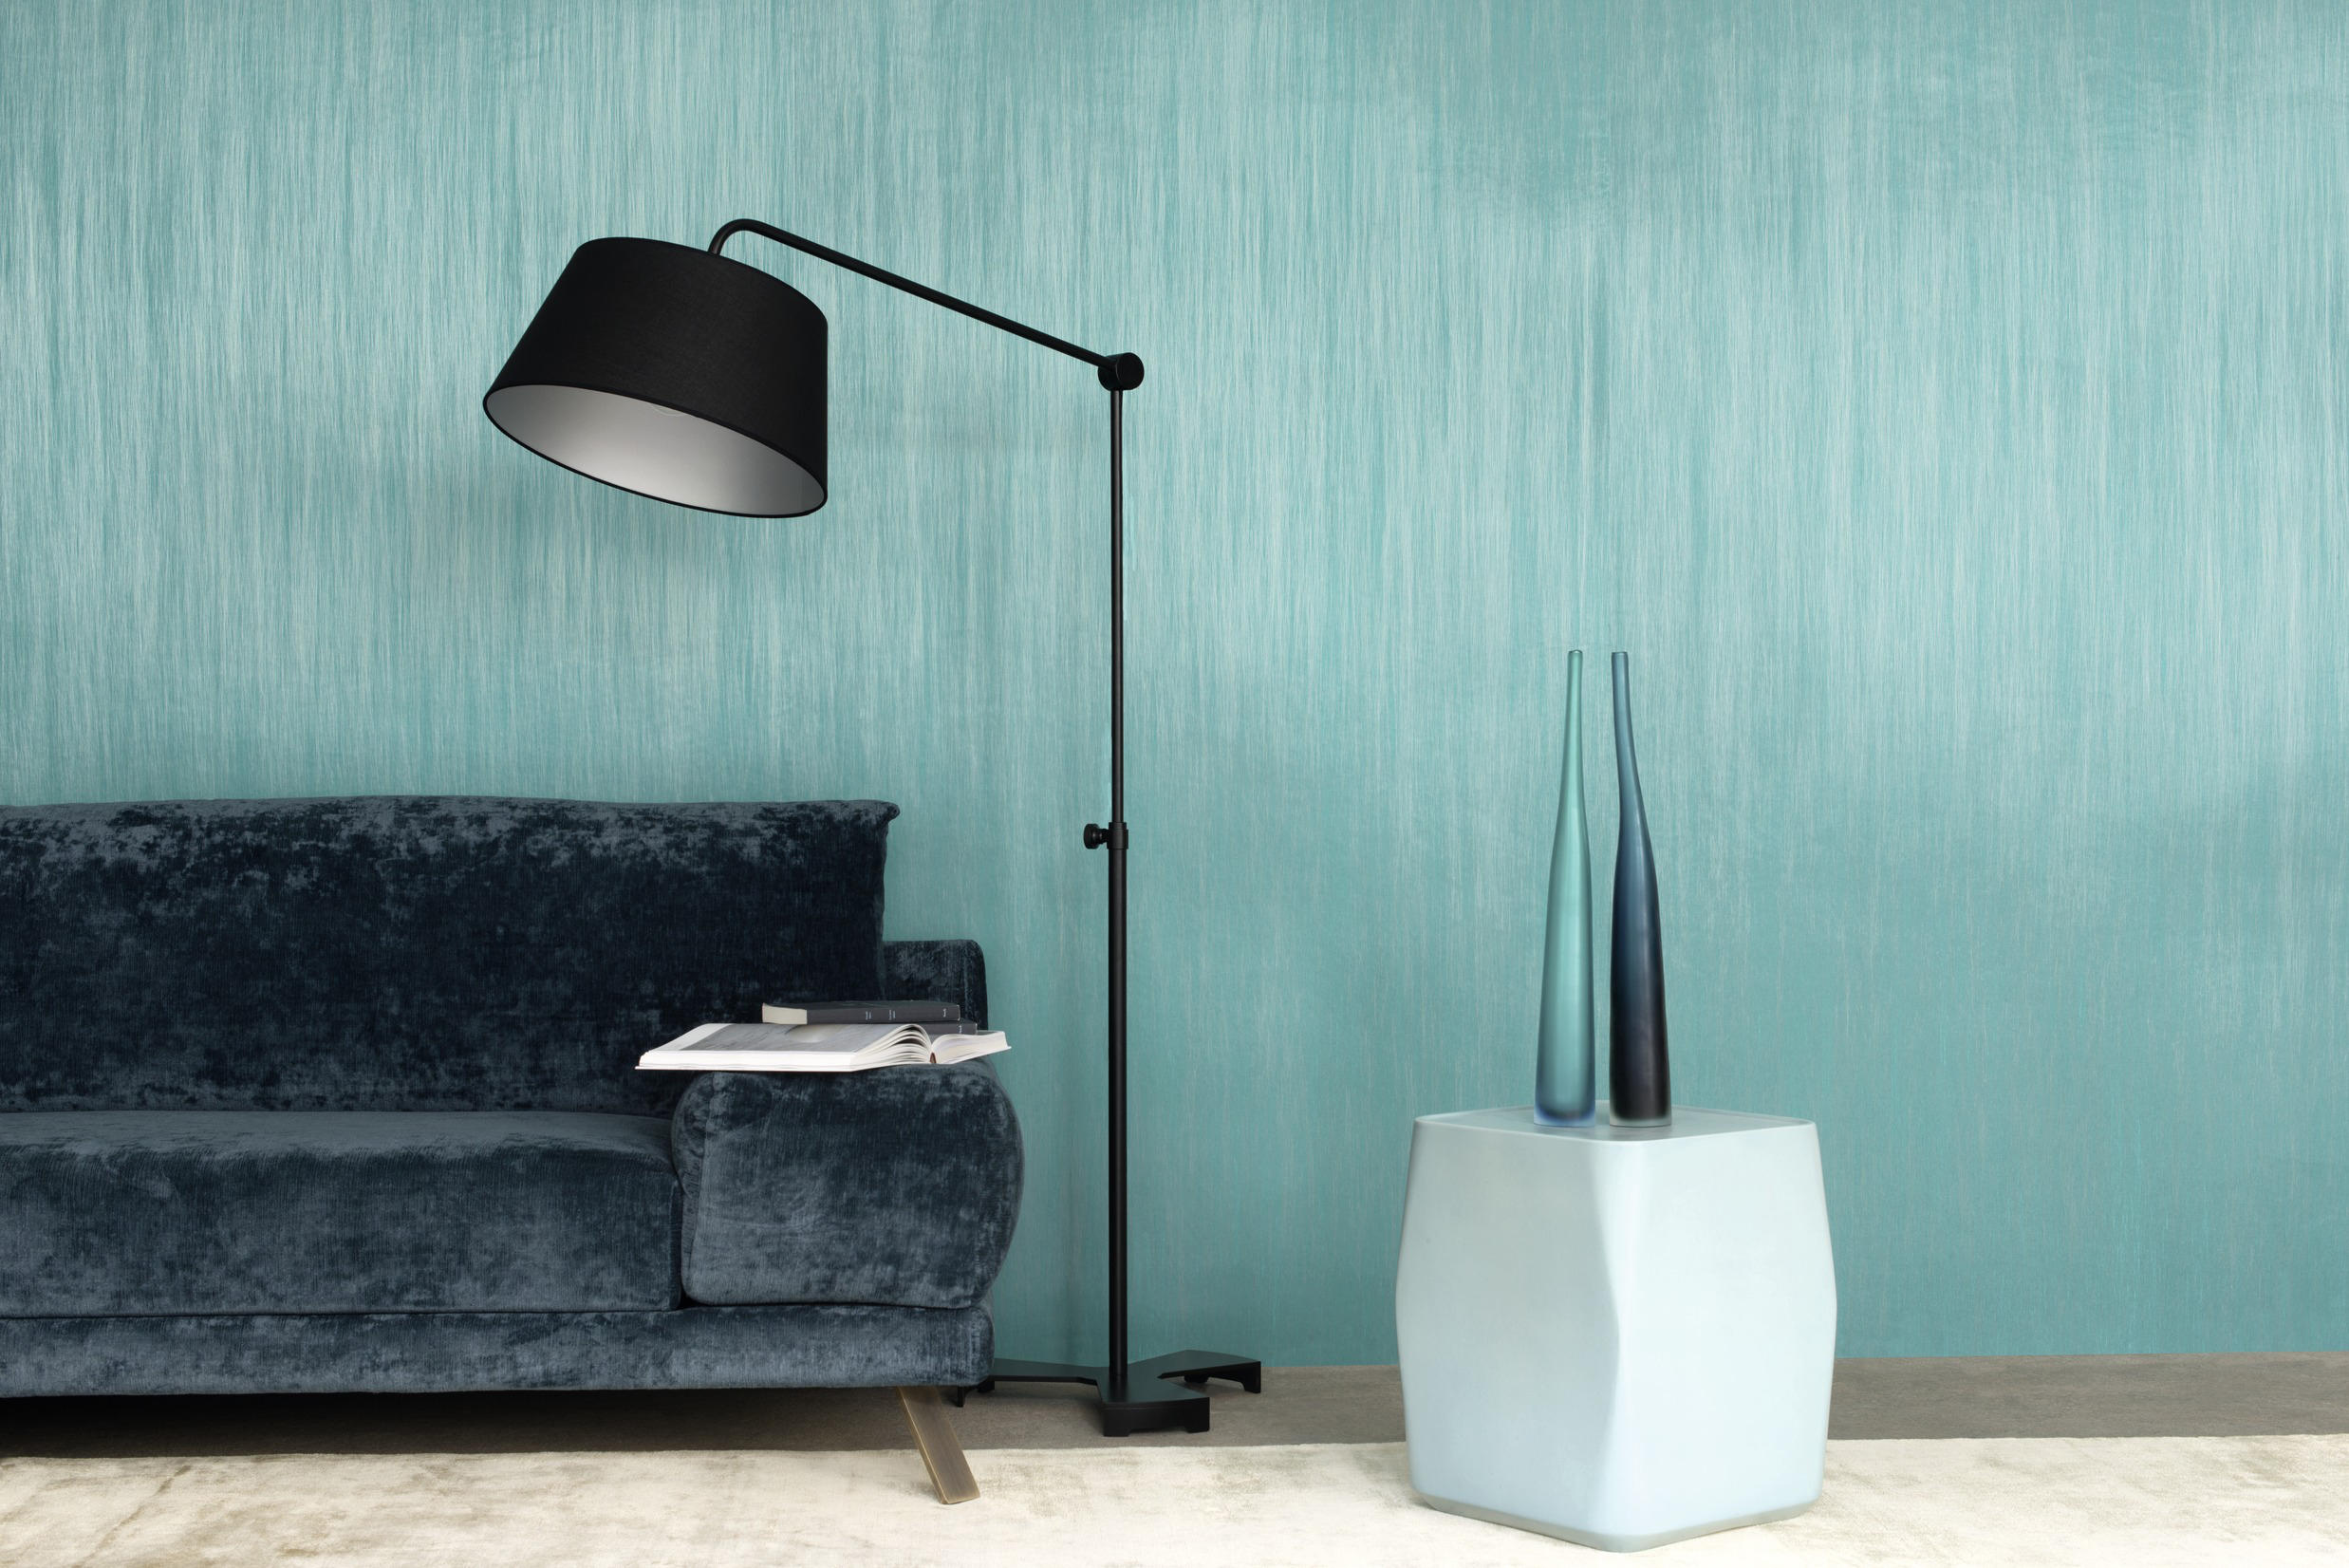 MATT TEXTURE RM 606 01 - Wall coverings / wallpapers from Elitis ...